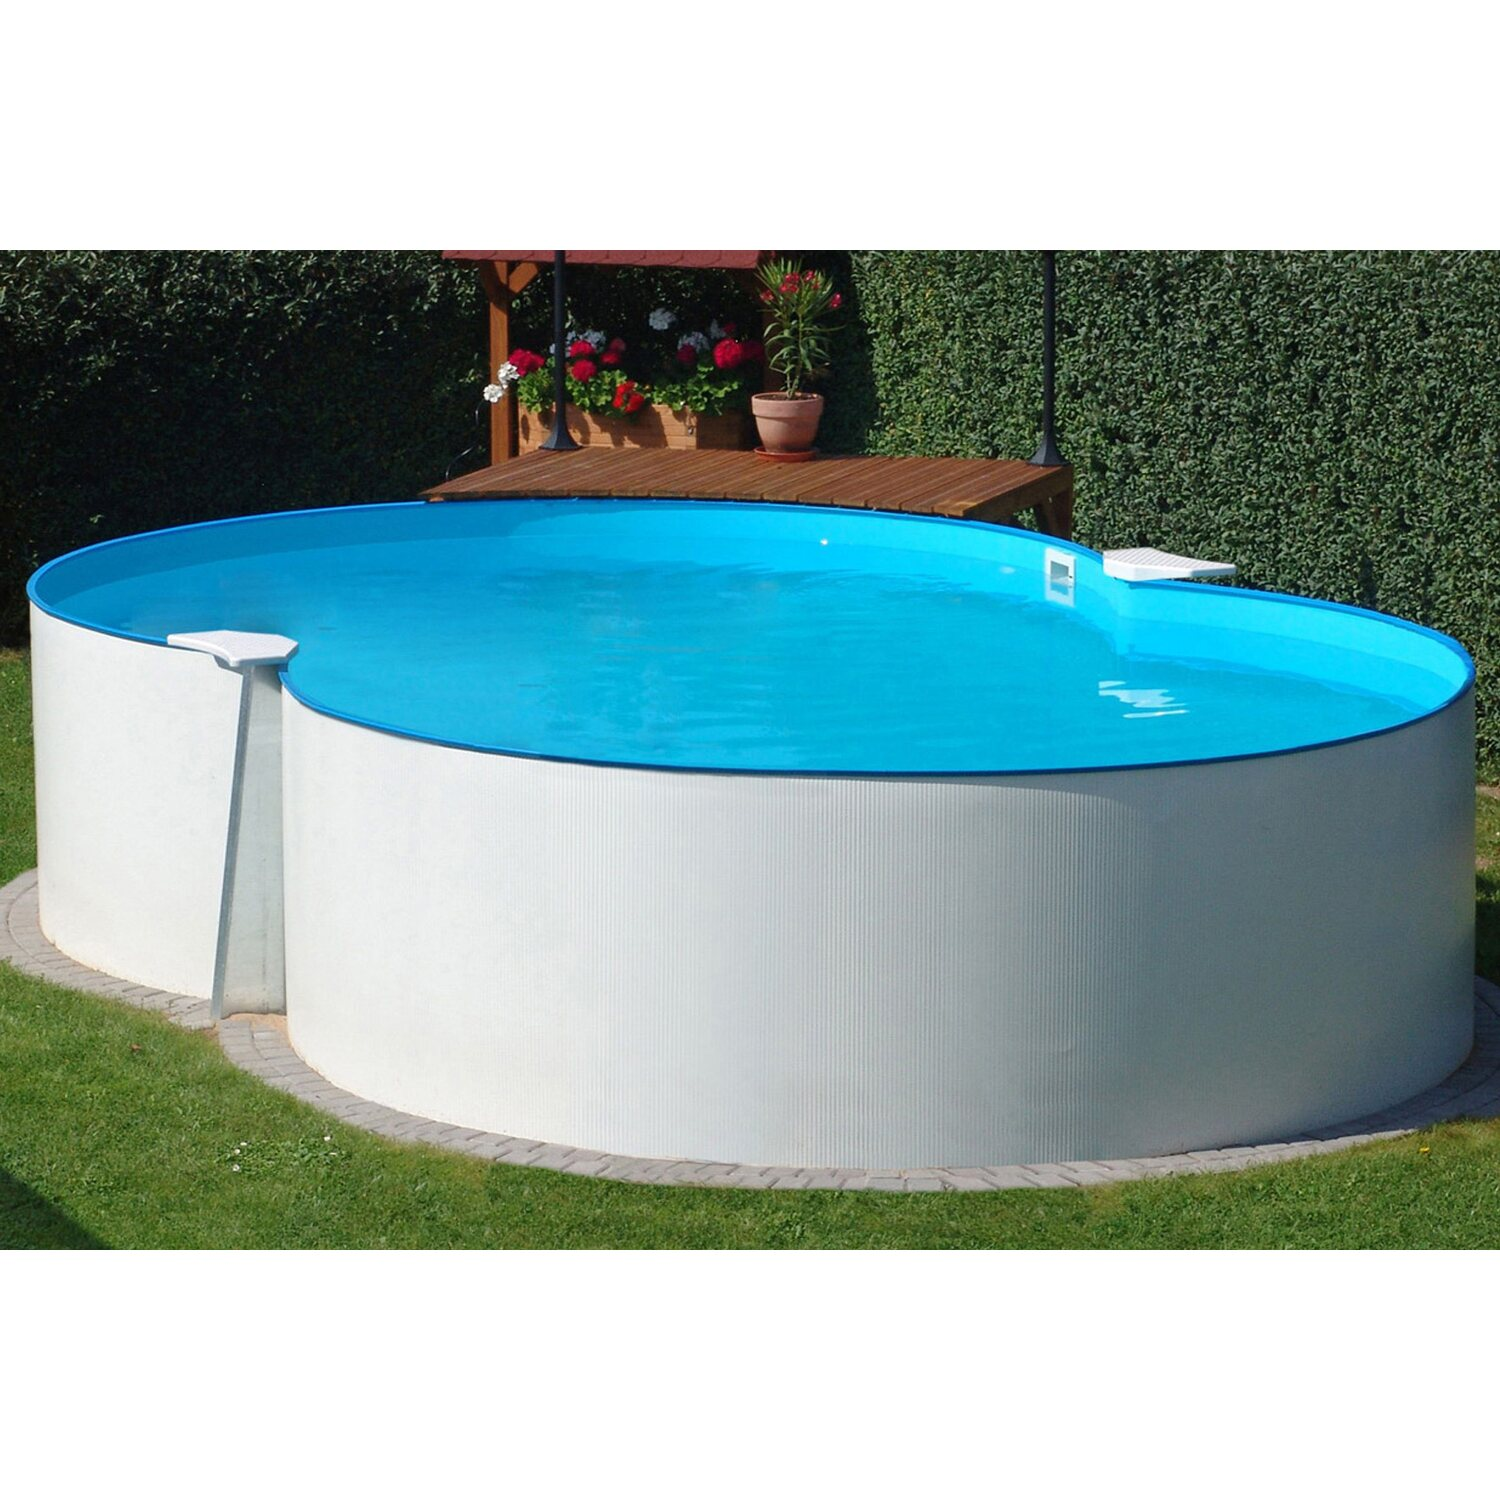 Stahlwand pool set montevideo aufstellbecken achtform 470 for Pool 300 x 120